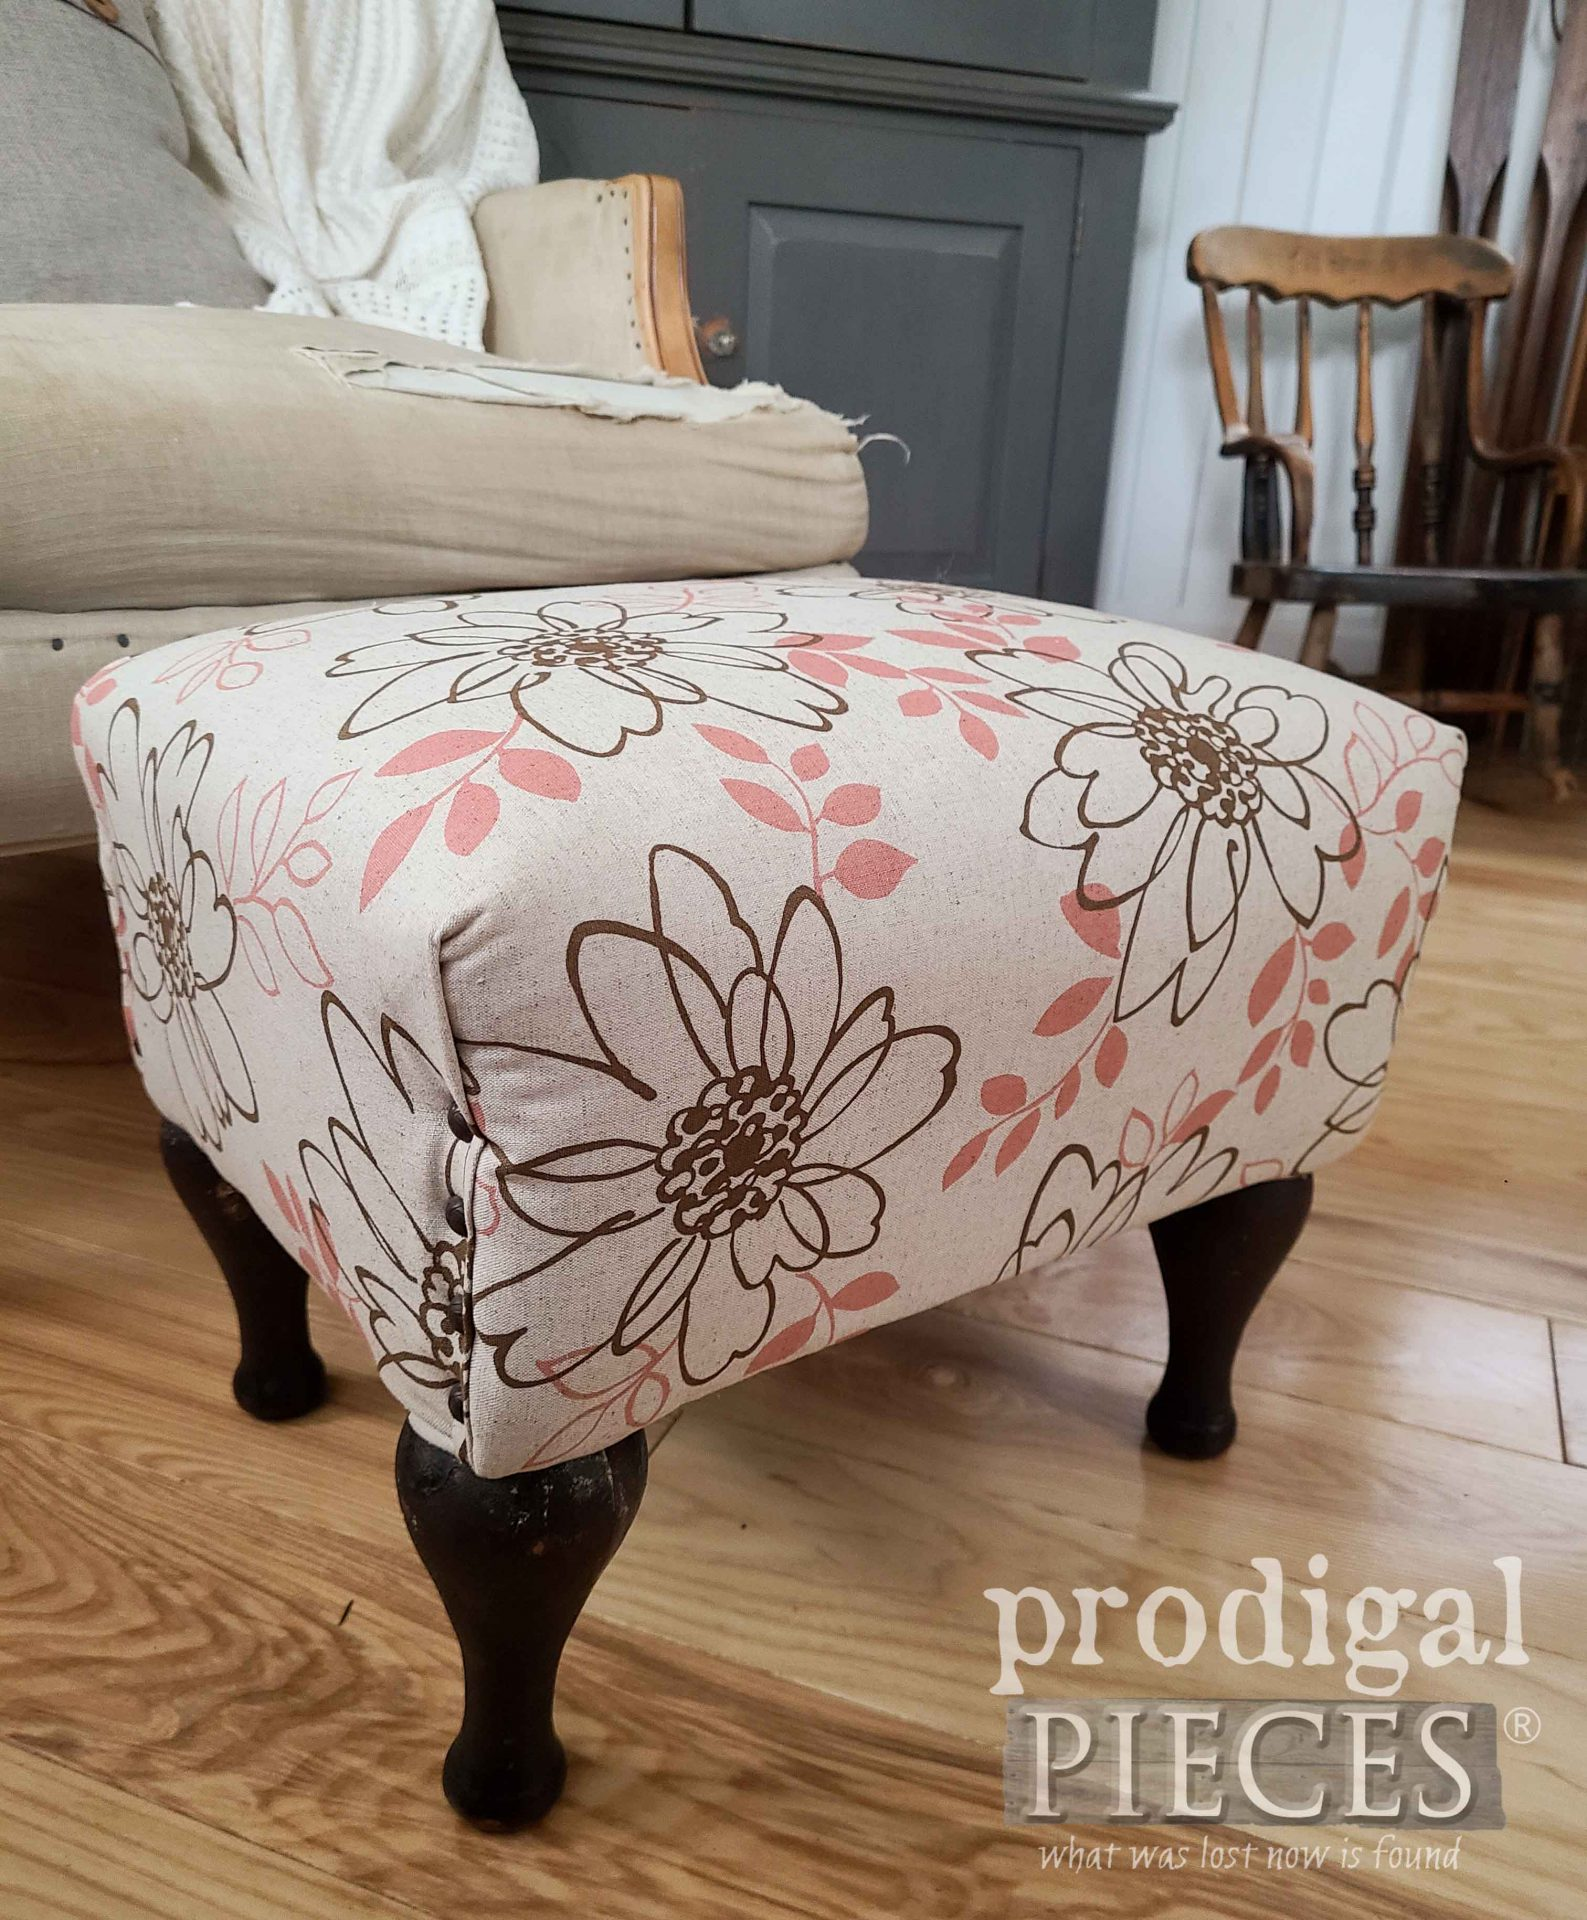 Vintage Vinyl Footstool Makeover by Larissa of Prodigal Pieces at prodigalpieces.com #prodigalpieces #furniture #vintage #home #homedecor